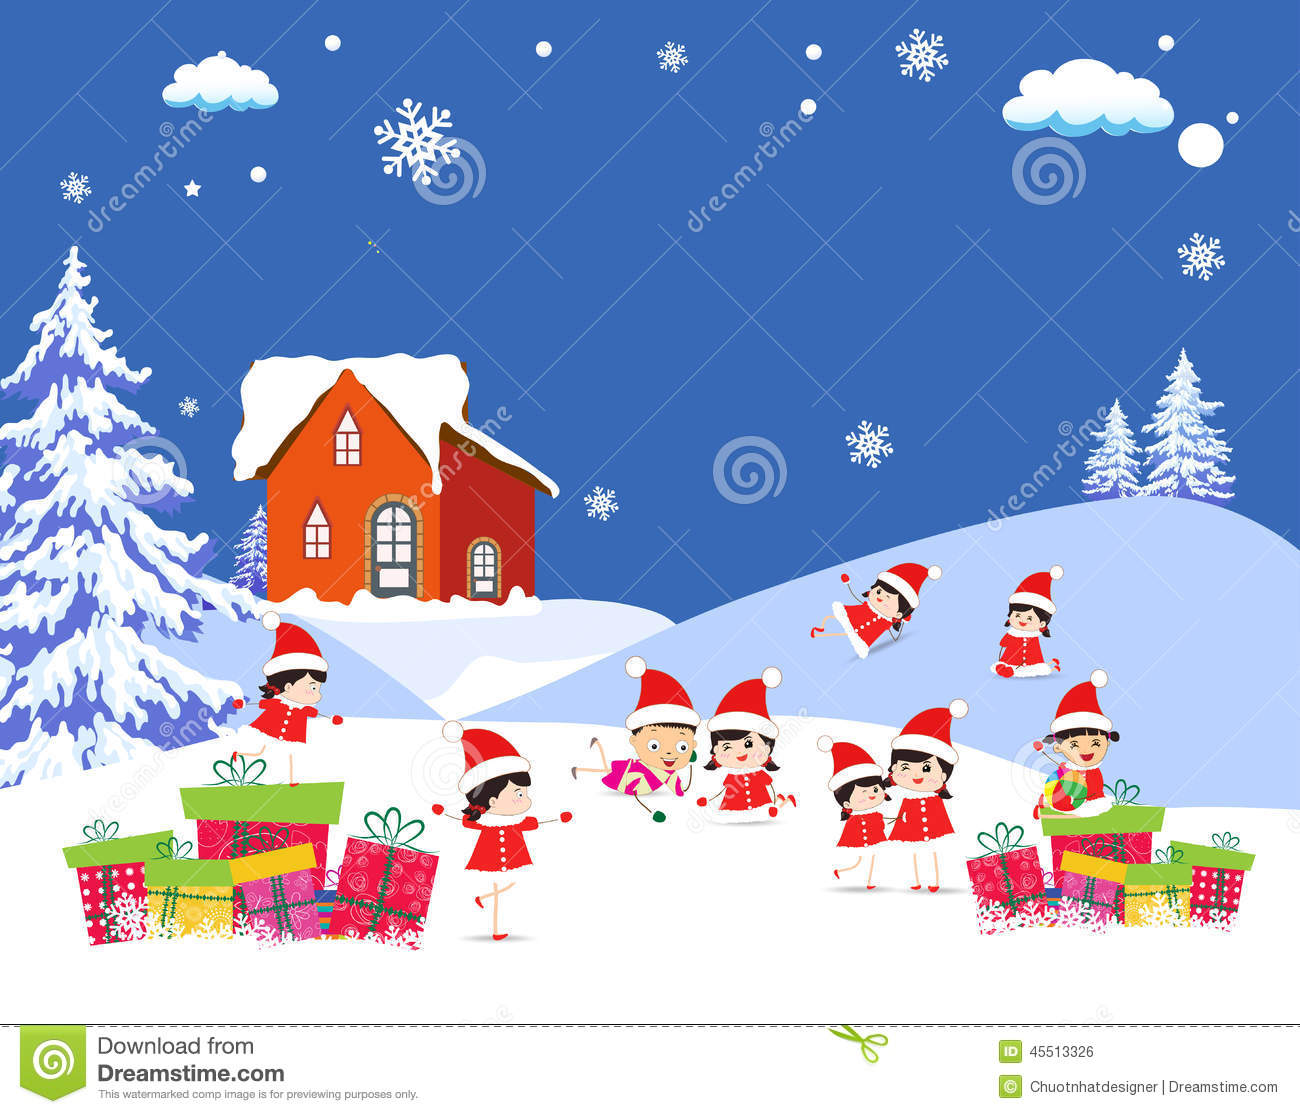 Christmas background for kids pictures christmas shopping site christmas background for kids pictures kristyandbryce Images